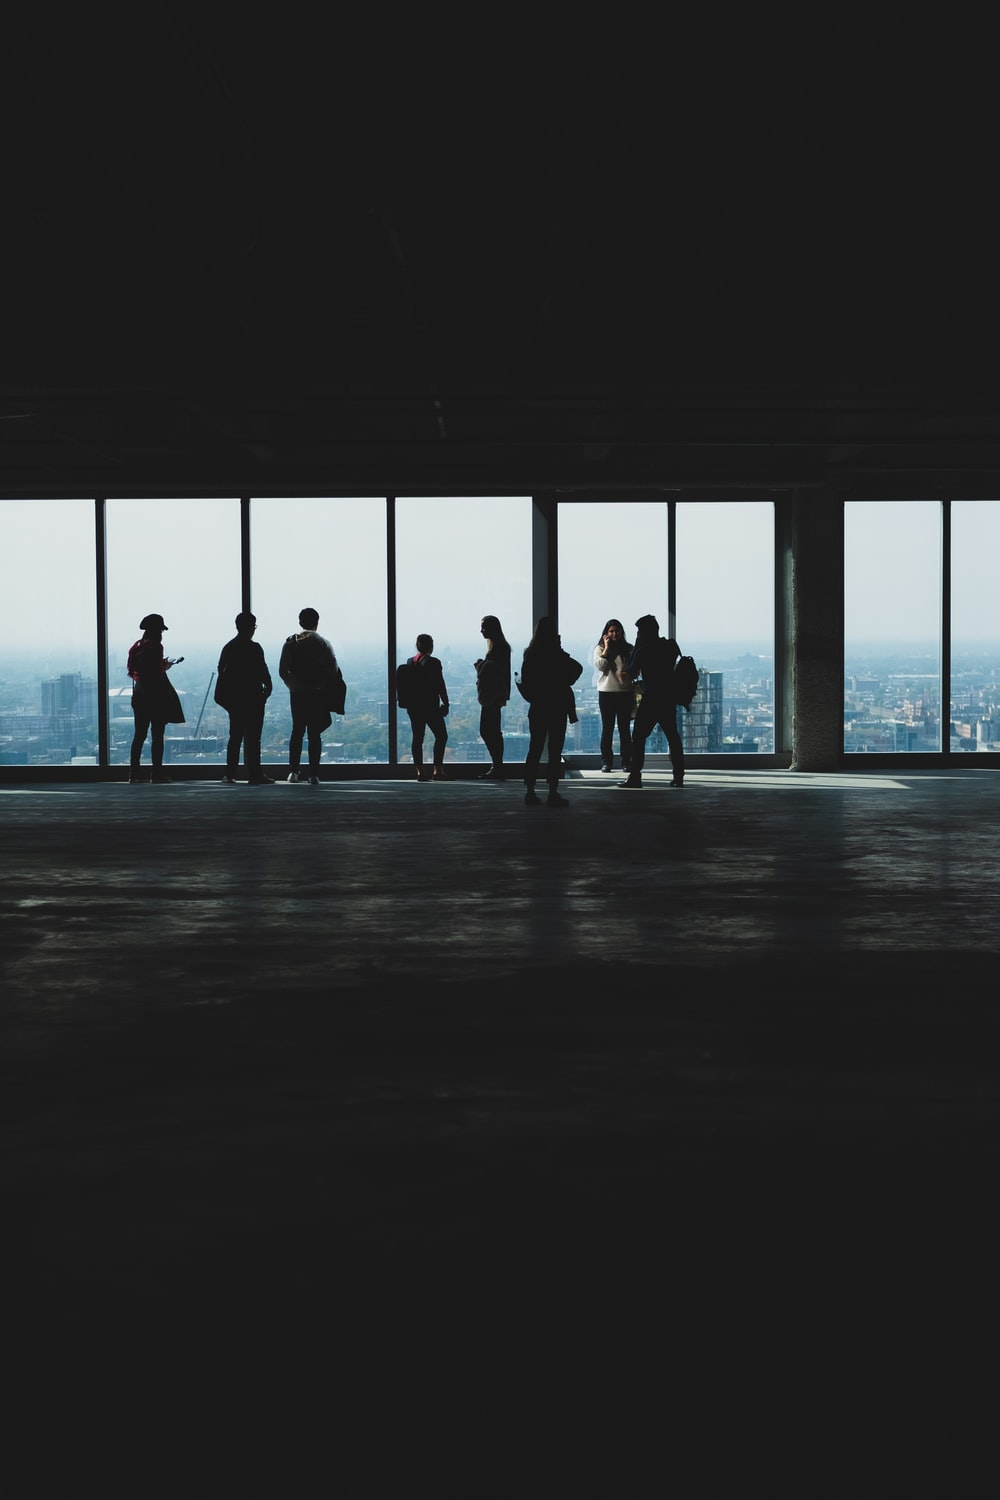 silhouette photography of people in tower